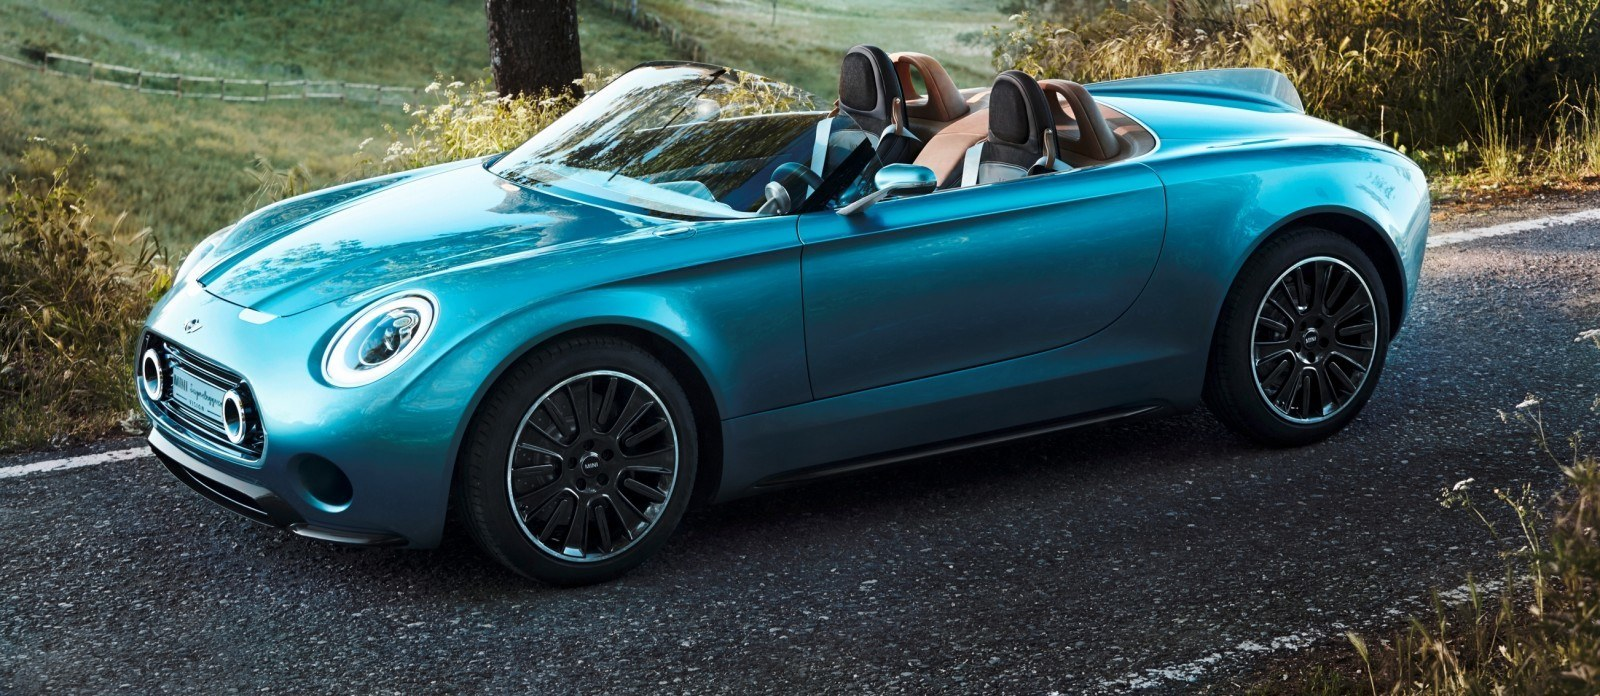 2014 MINI Superleggera Concept is Dreamy Roofless Speedster26